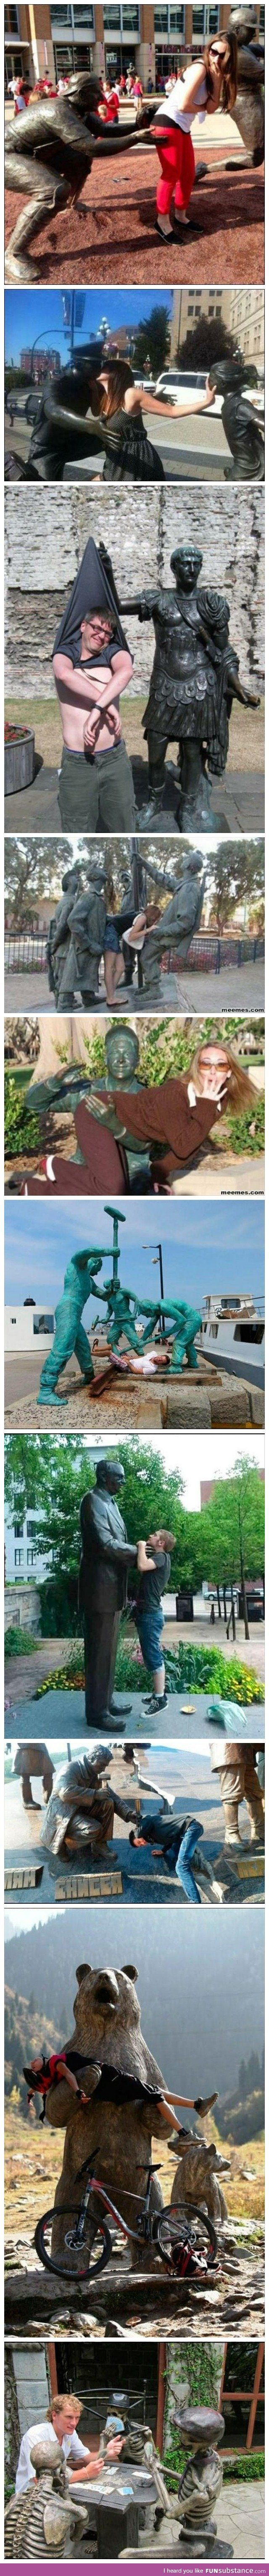 Having fun with statues...